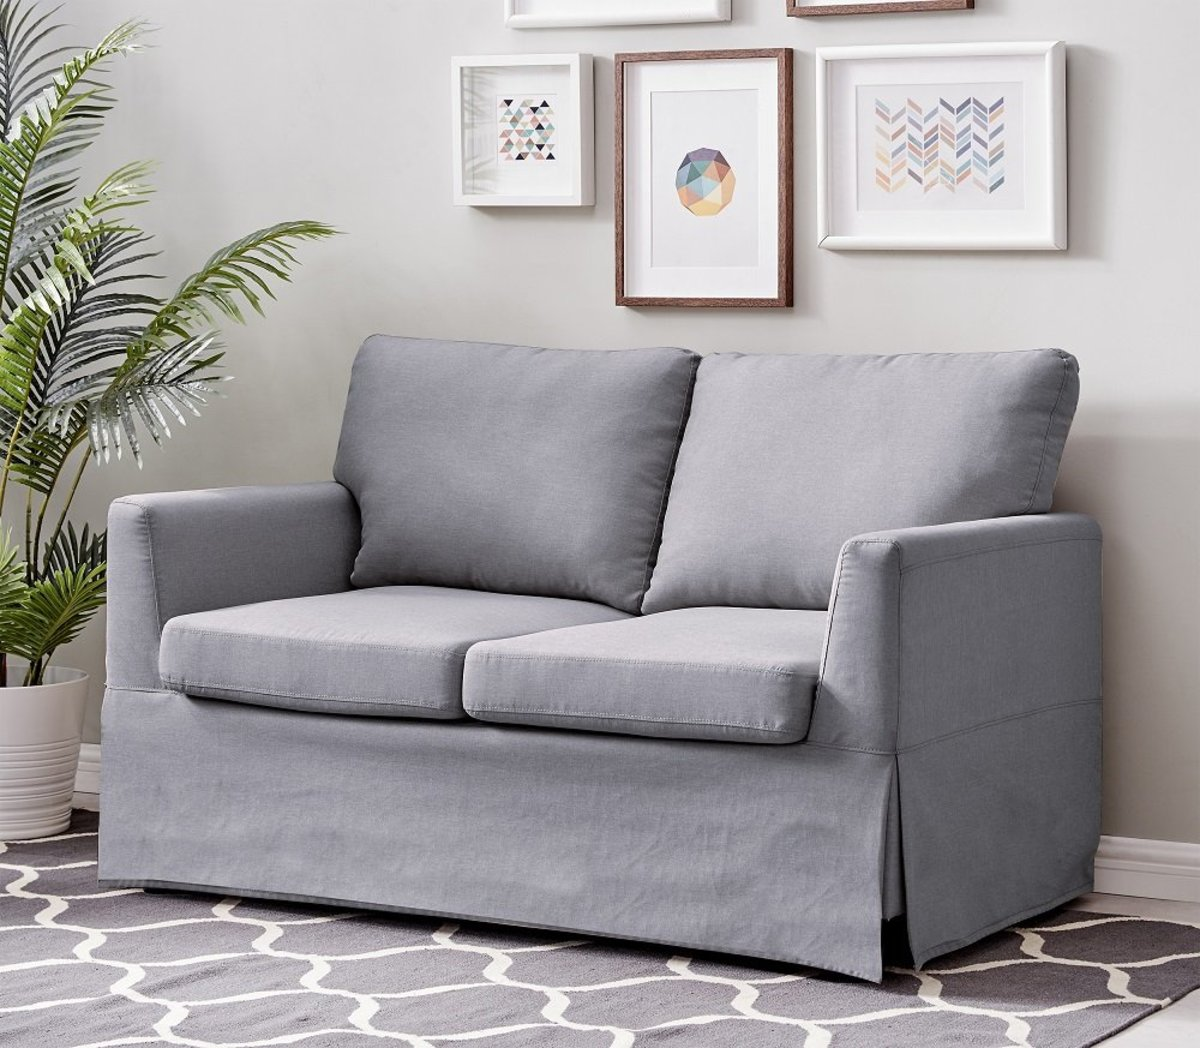 2 SEATS SOFA IN GRAY COLOR WITH POLYESTER FABRIC